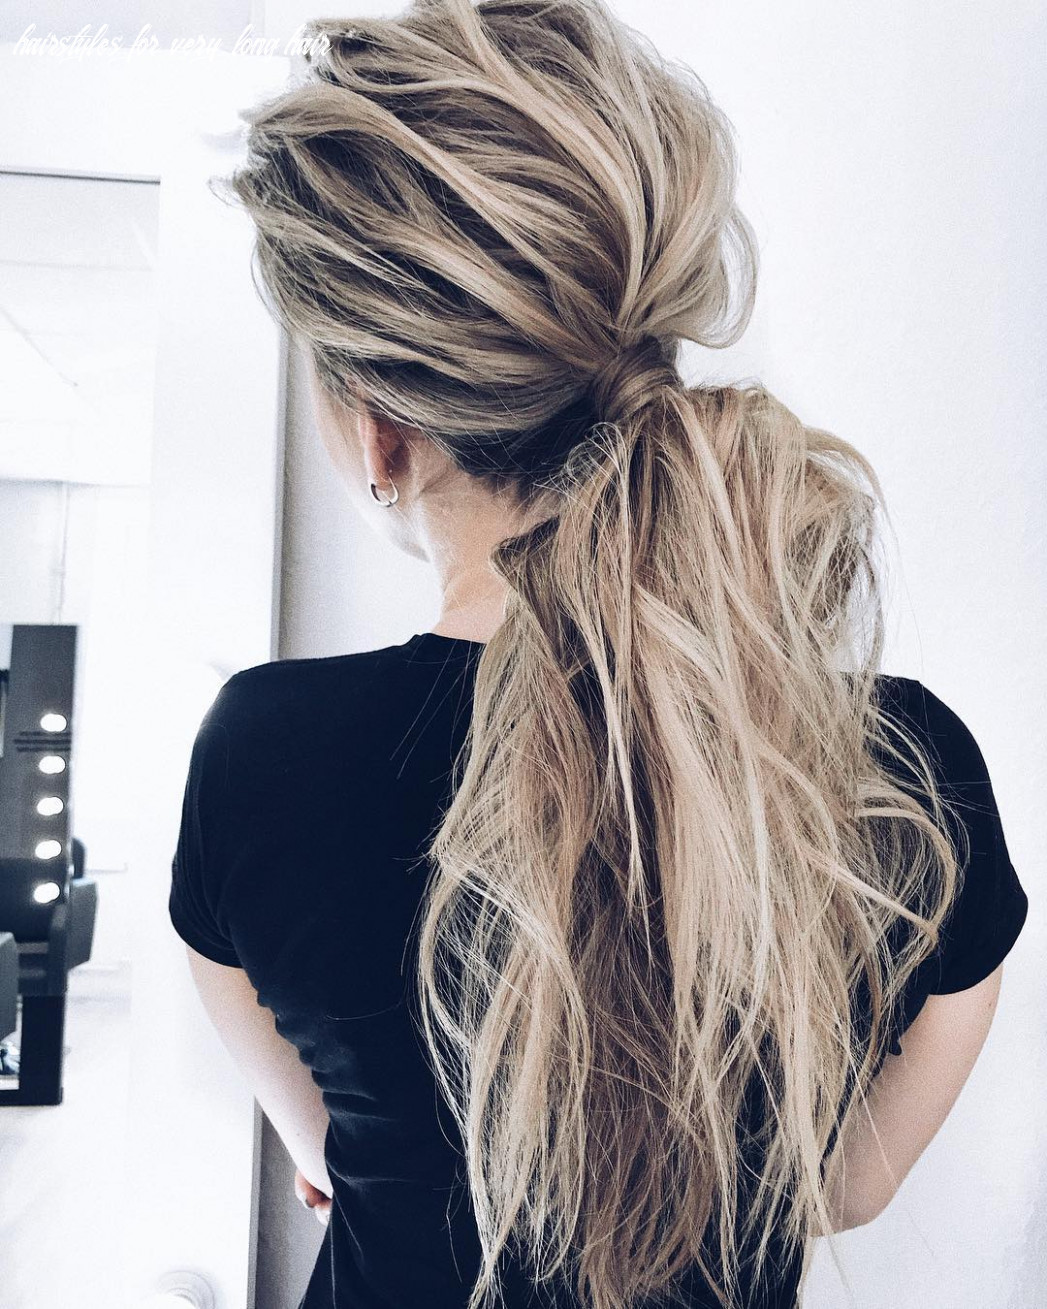 10 creative ponytail hairstyles for long hair, summer hairstyle